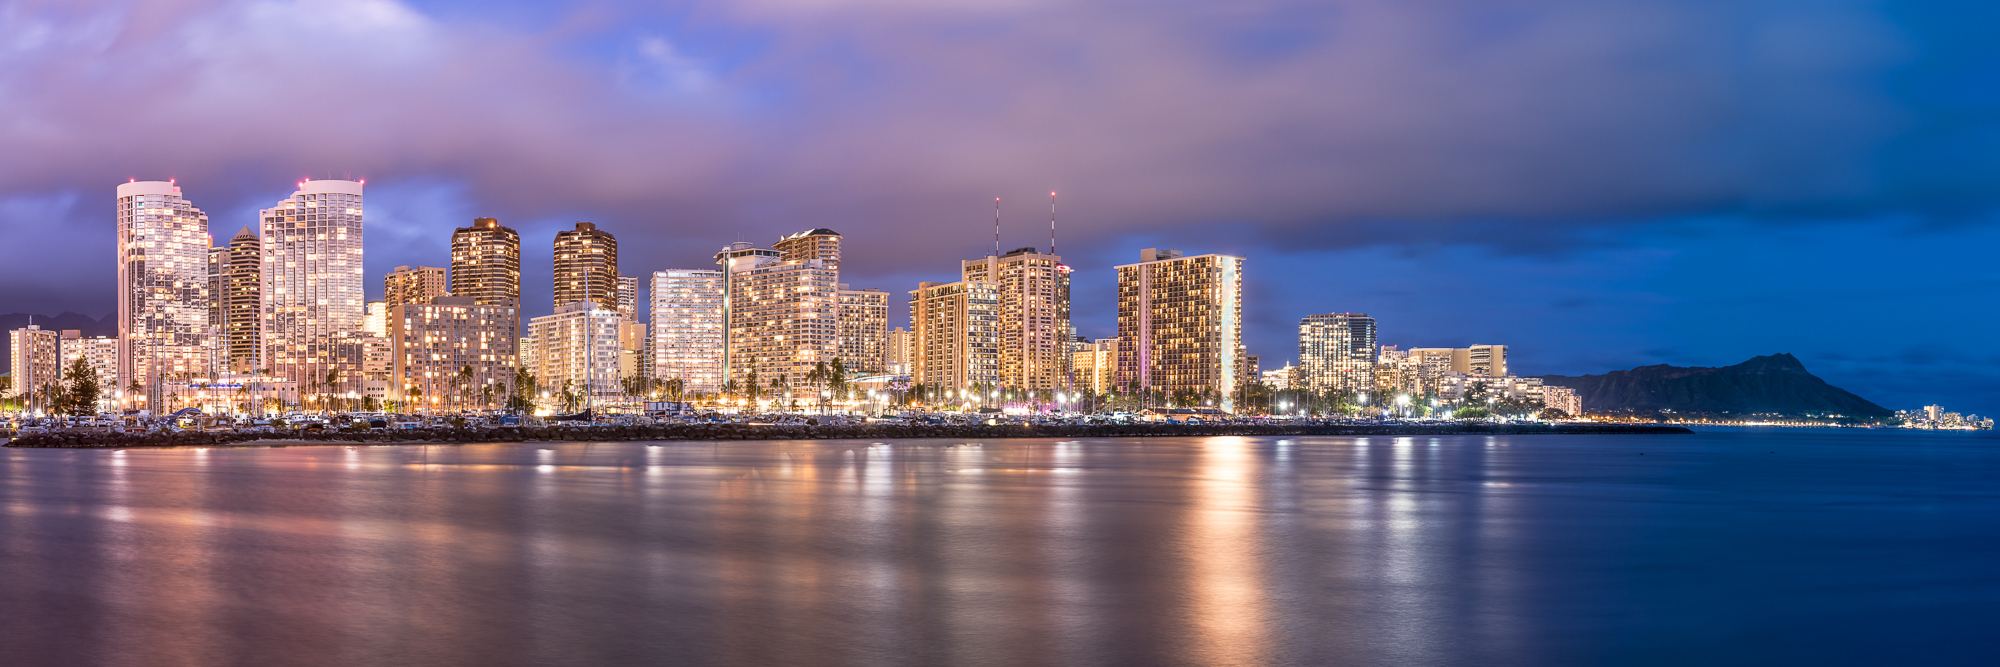 Waikiki city lights and Diamond Head (far right) at night. This shot was a panoramic stitch of 7 photographs.